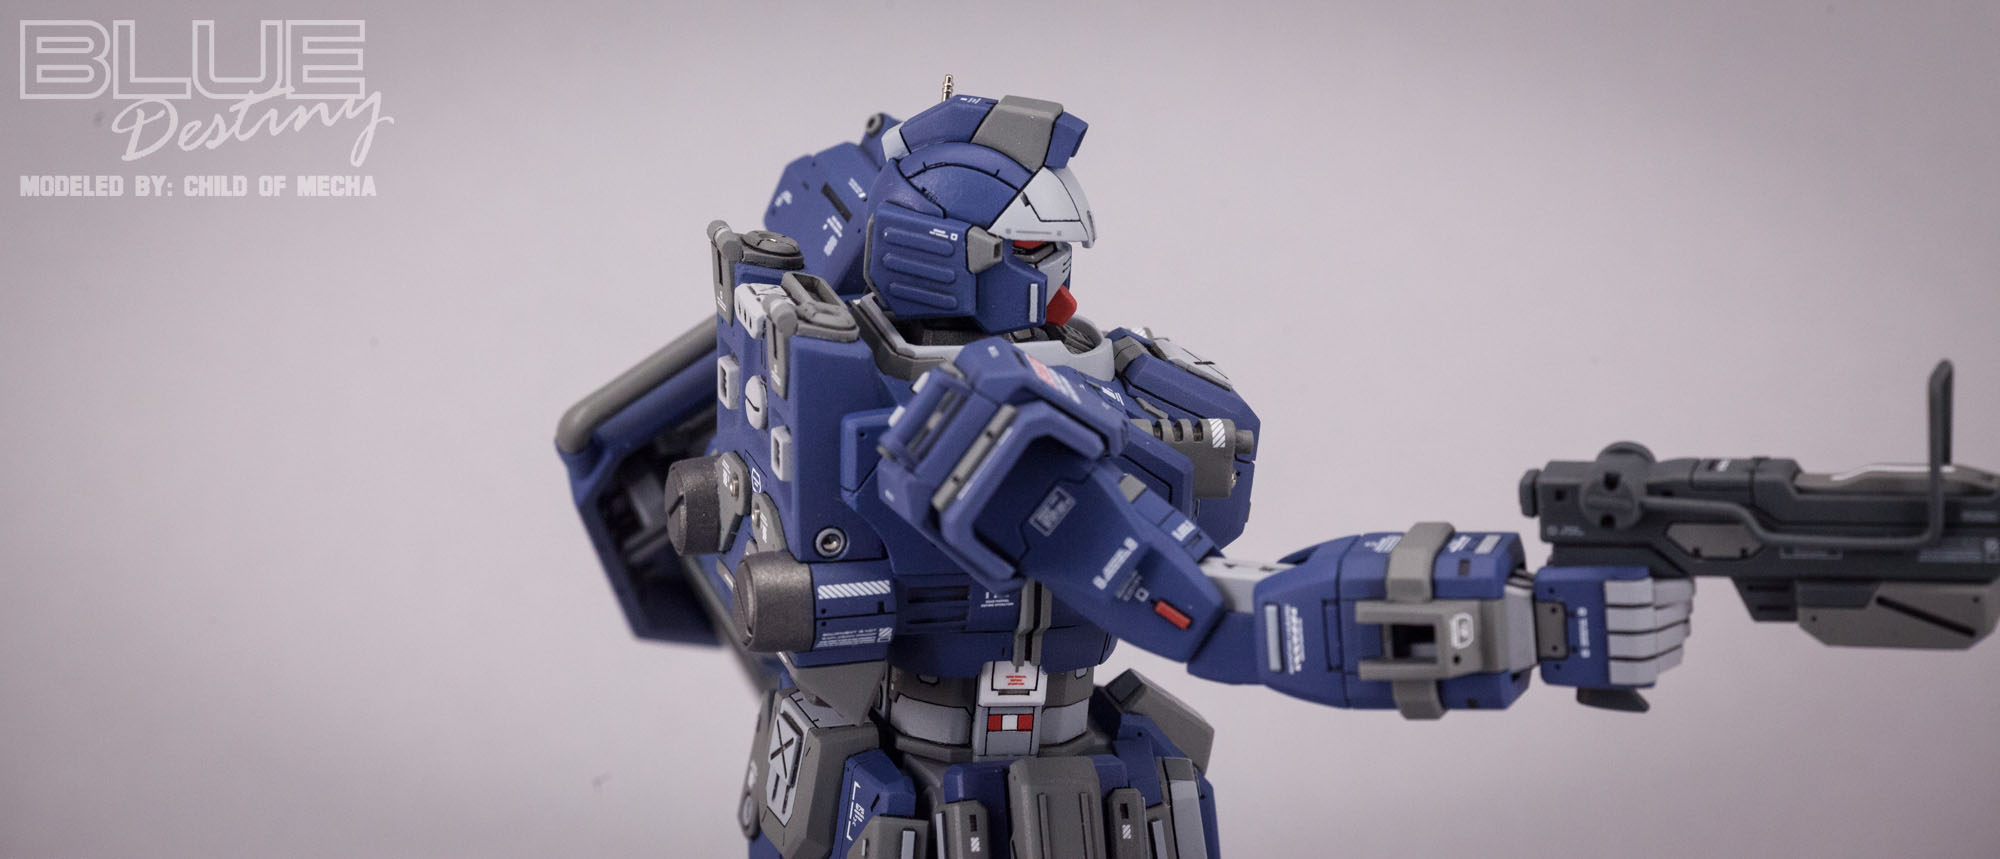 Blue Destiny Refurbished (53).jpg